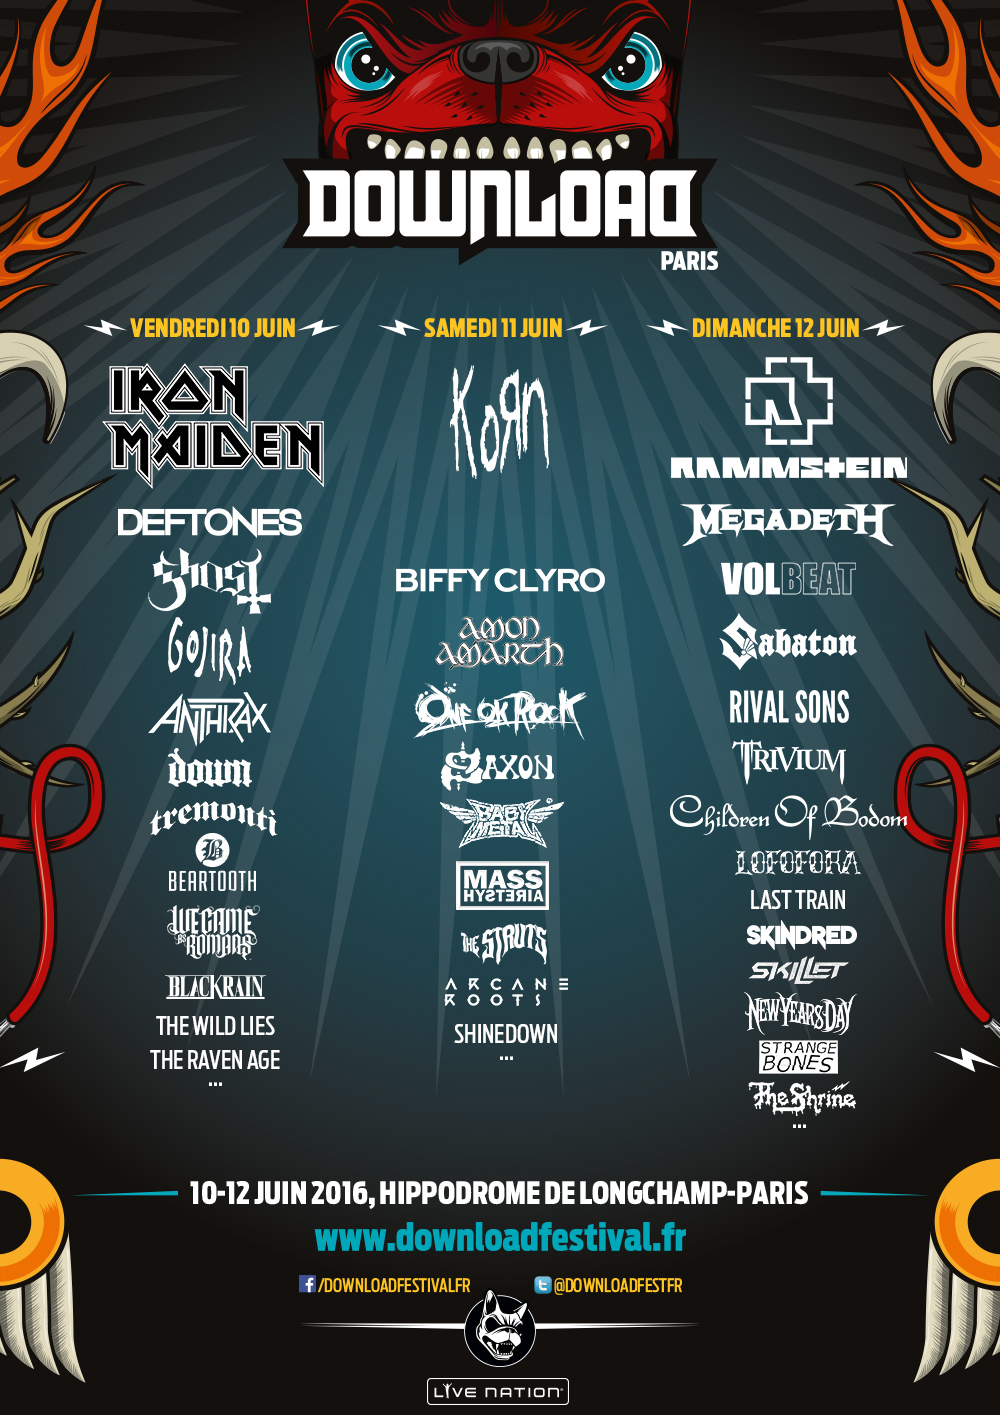 Download Festival Paris 2016 Lineup 1